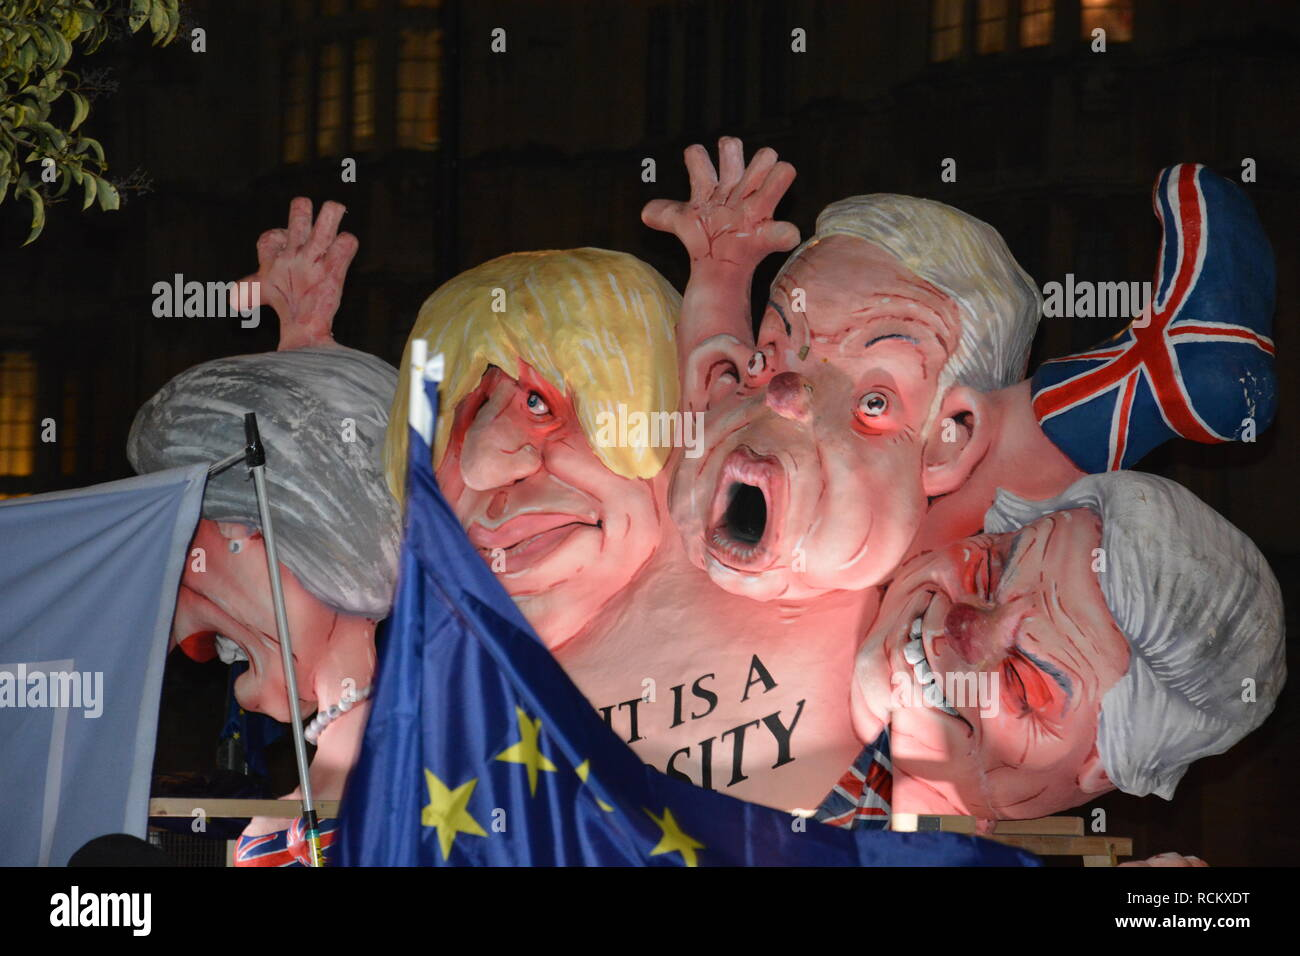 Night of the Meaningful Vote in Parliament 15th January 2019. - Stock Image